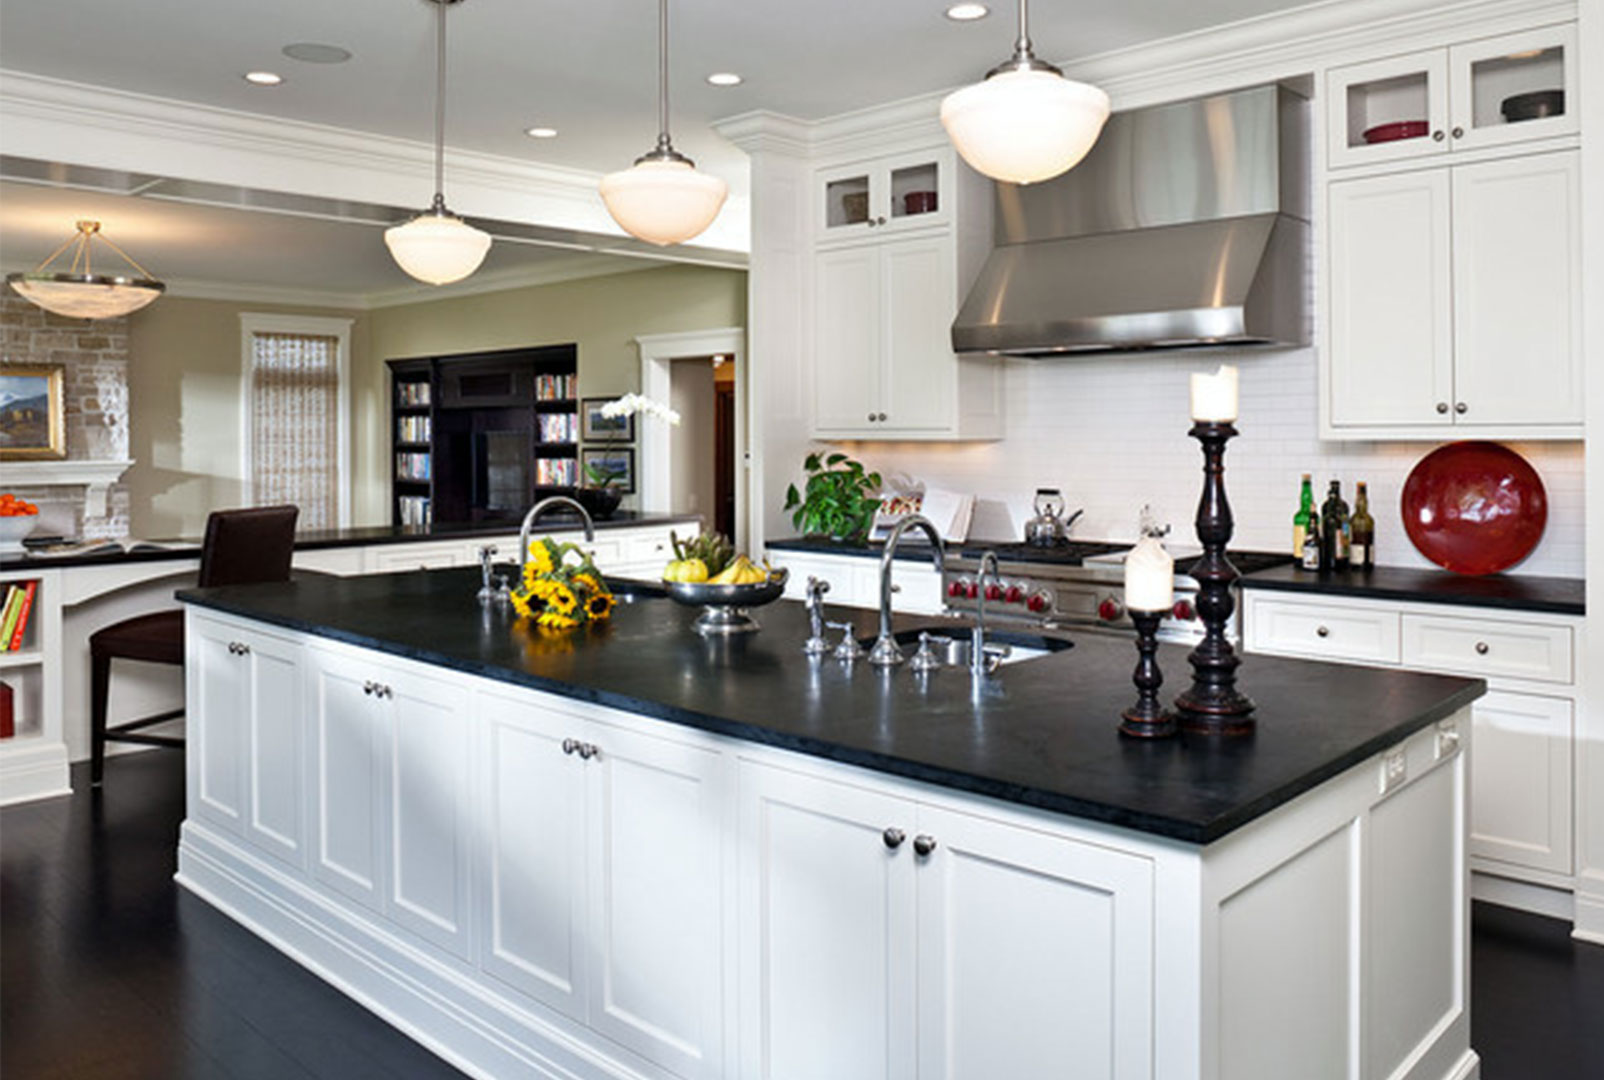 First thoughts on kitchen remodeling desis home experts for Best kitchen renovation ideas